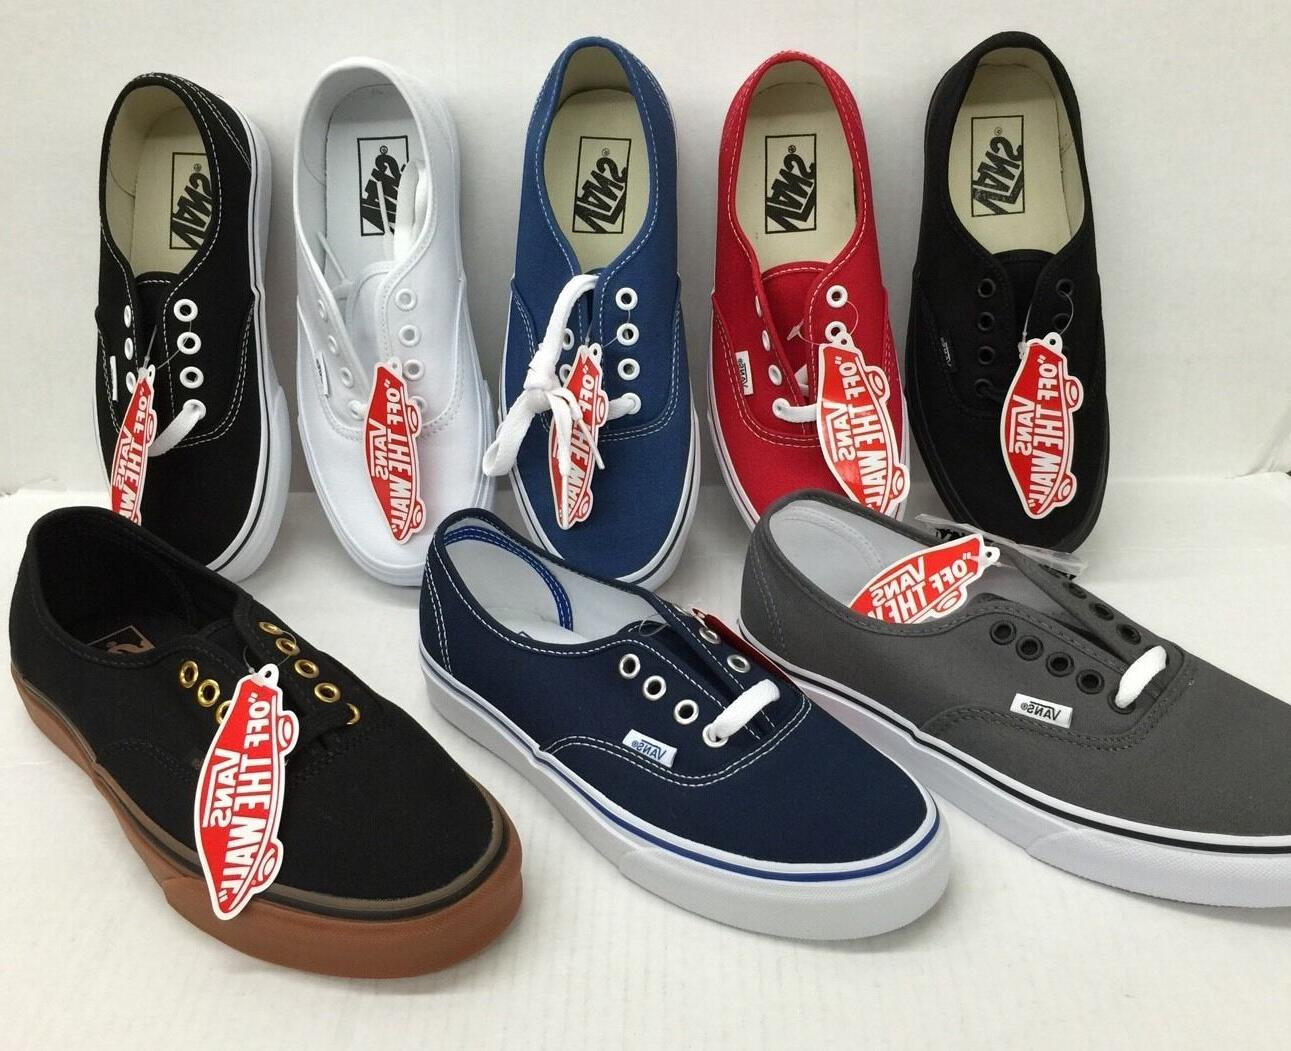 new authentic classic sneakers unisex canvas shoes